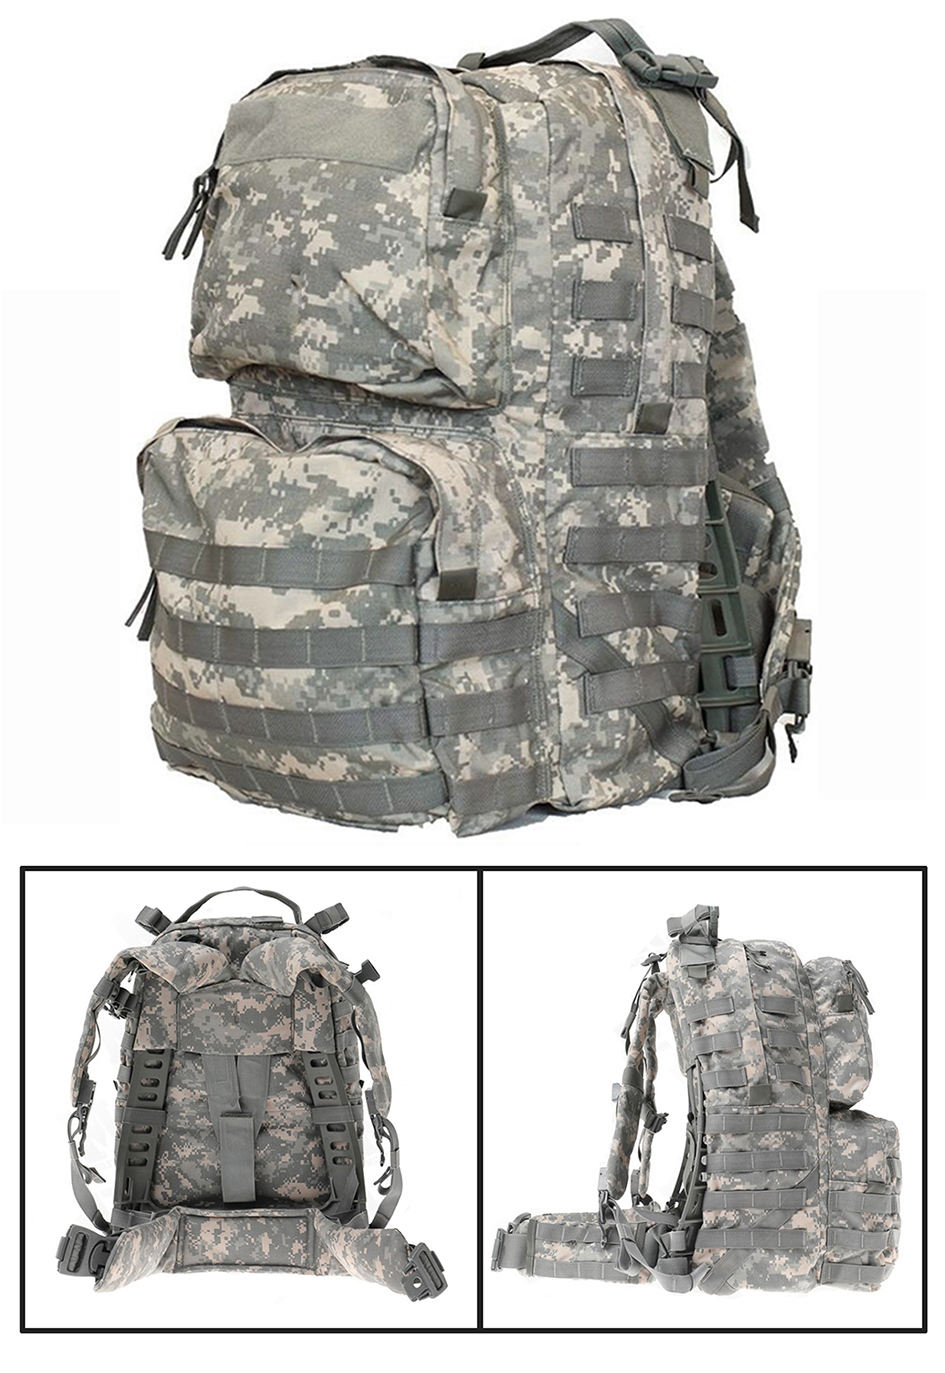 1/16 U.S. Military assault backpack(图4)